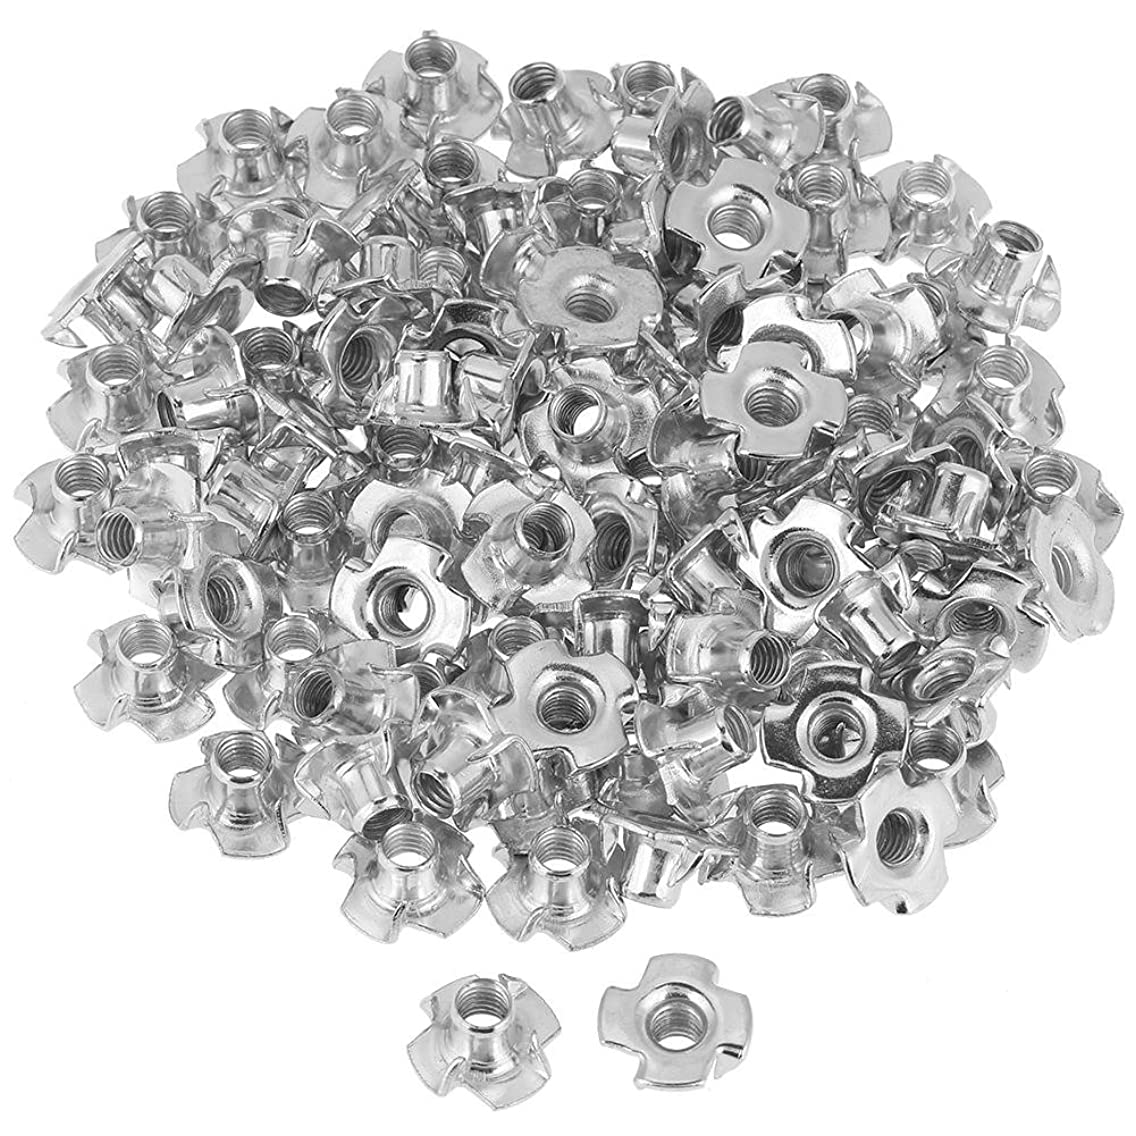 Four-Pronged Tee Nuts, 100pcs Zinc Plated Carbon Steel T Nut Four-Pronged Tee Nuts for Woodworking Furniture (M8)